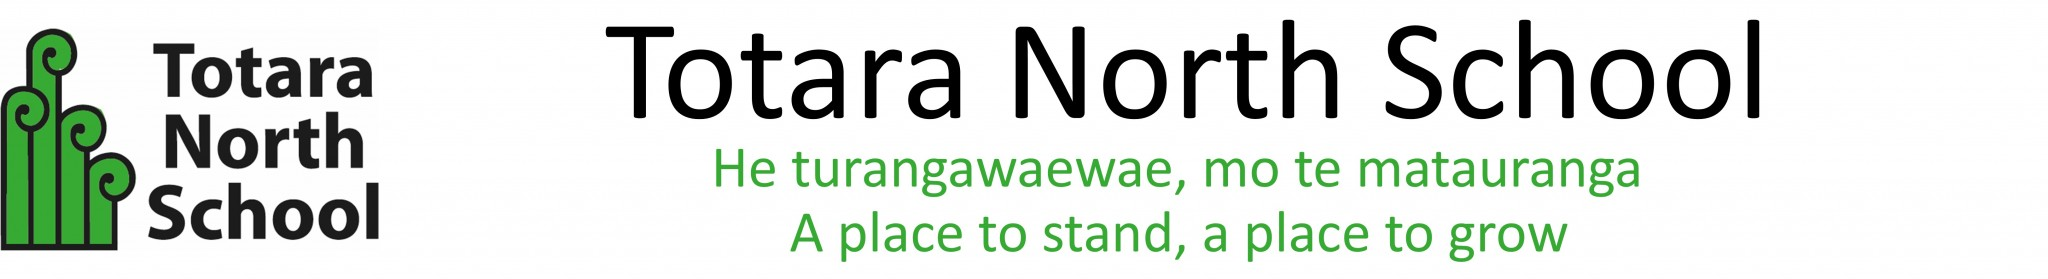 Totara North School Logo